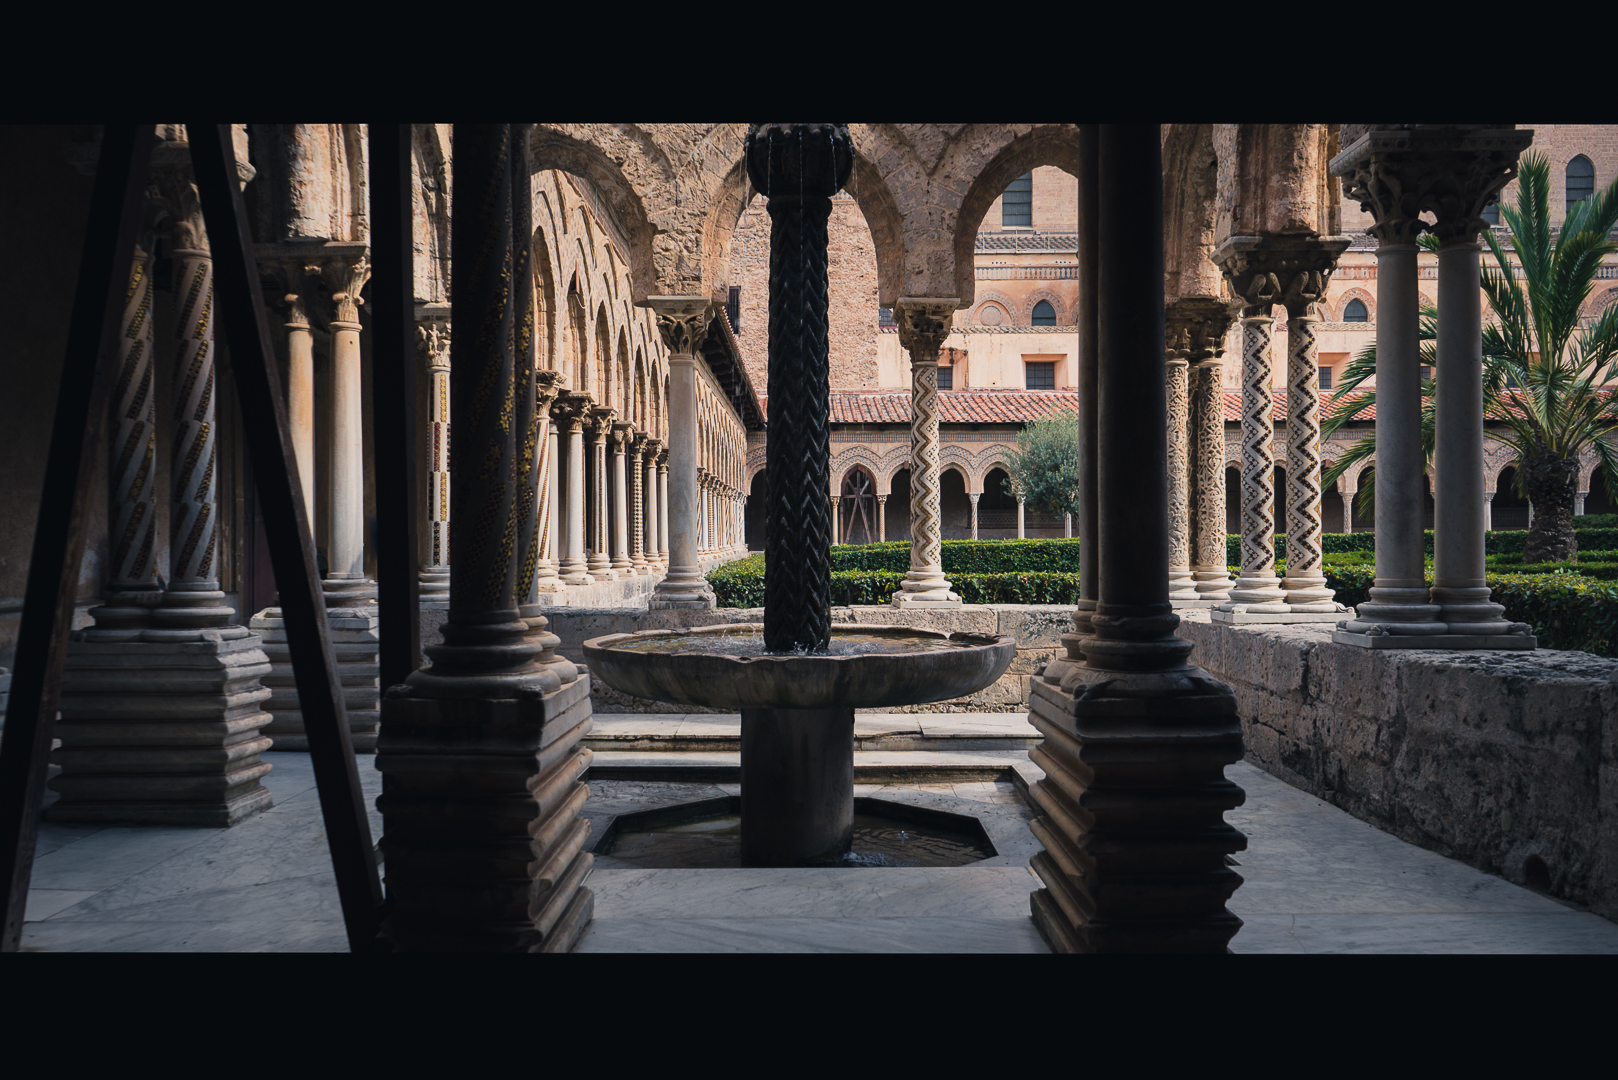 Monreale Cathedral, Sicily, Italy